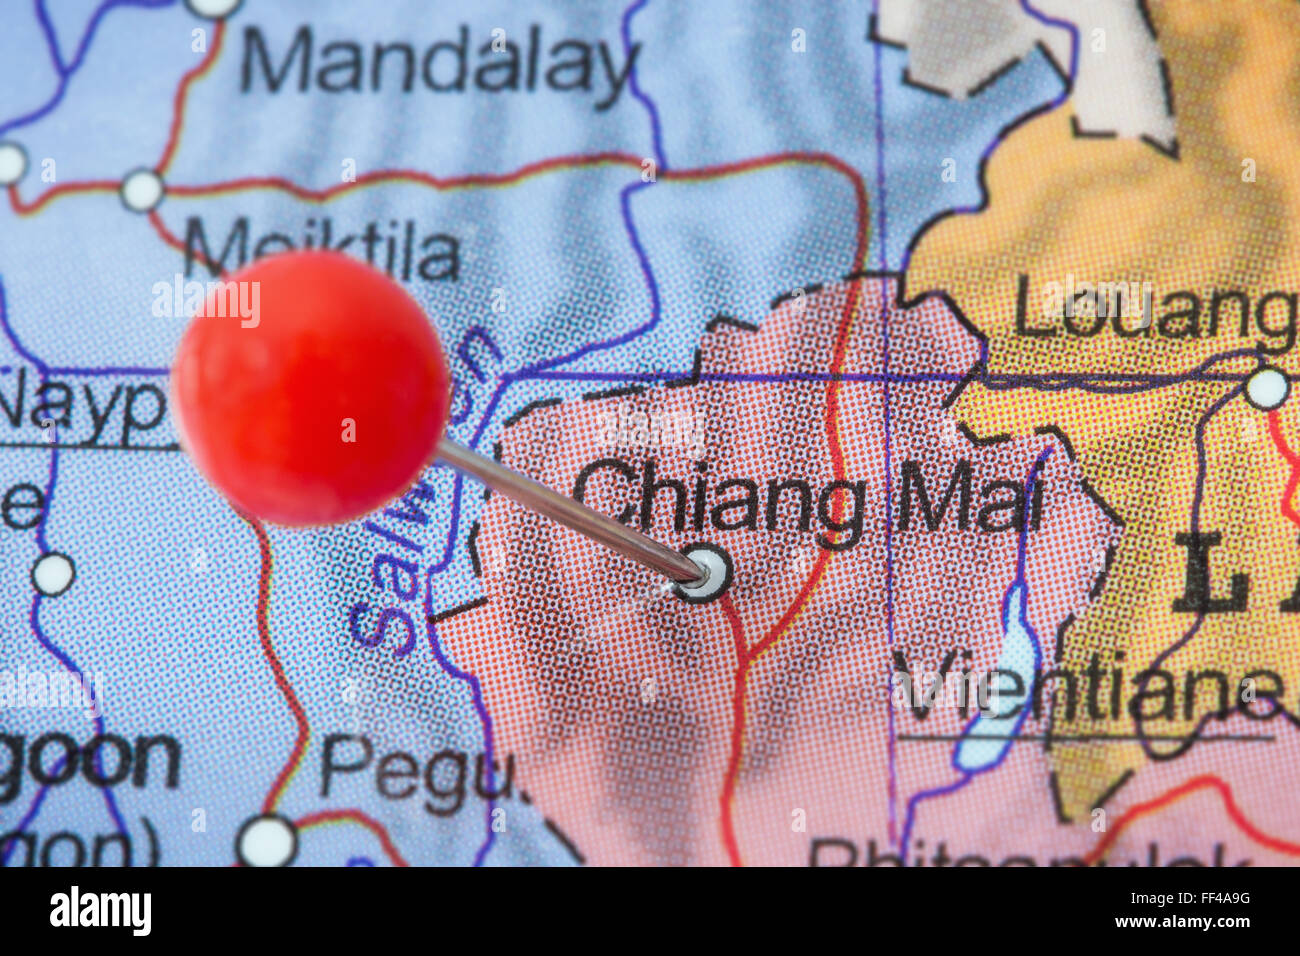 Close-up of a red pushpin in a map of Chiang Mai, Thailand ... on provinces of thailand, phuket province, mae taeng thailand map, koh yao noi thailand map, surat thani province, thanyaburi thailand map, nakhon phanom thailand map, koh samui thailand map, koh tao island thailand map, suratthani thailand map, nang rong thailand map, bophut thailand map, chiang rai, krabi province, phuket thailand map, wat phrathat doi suthep, wat pho thailand map, chiang mai zoo, doi inthanon thailand map, wat phra kaew thailand map, doi inthanon, kanchanaburi province thailand map, aranyaprathet thailand map, kanchanaburi province, uthai thani thailand map, northern thailand, doi suthep, thailand train service map, chiang rai province, phang nga province, chennai thailand map, khon kaen province, southern thailand, nan province, mae sai thailand map, grand palace thailand map,